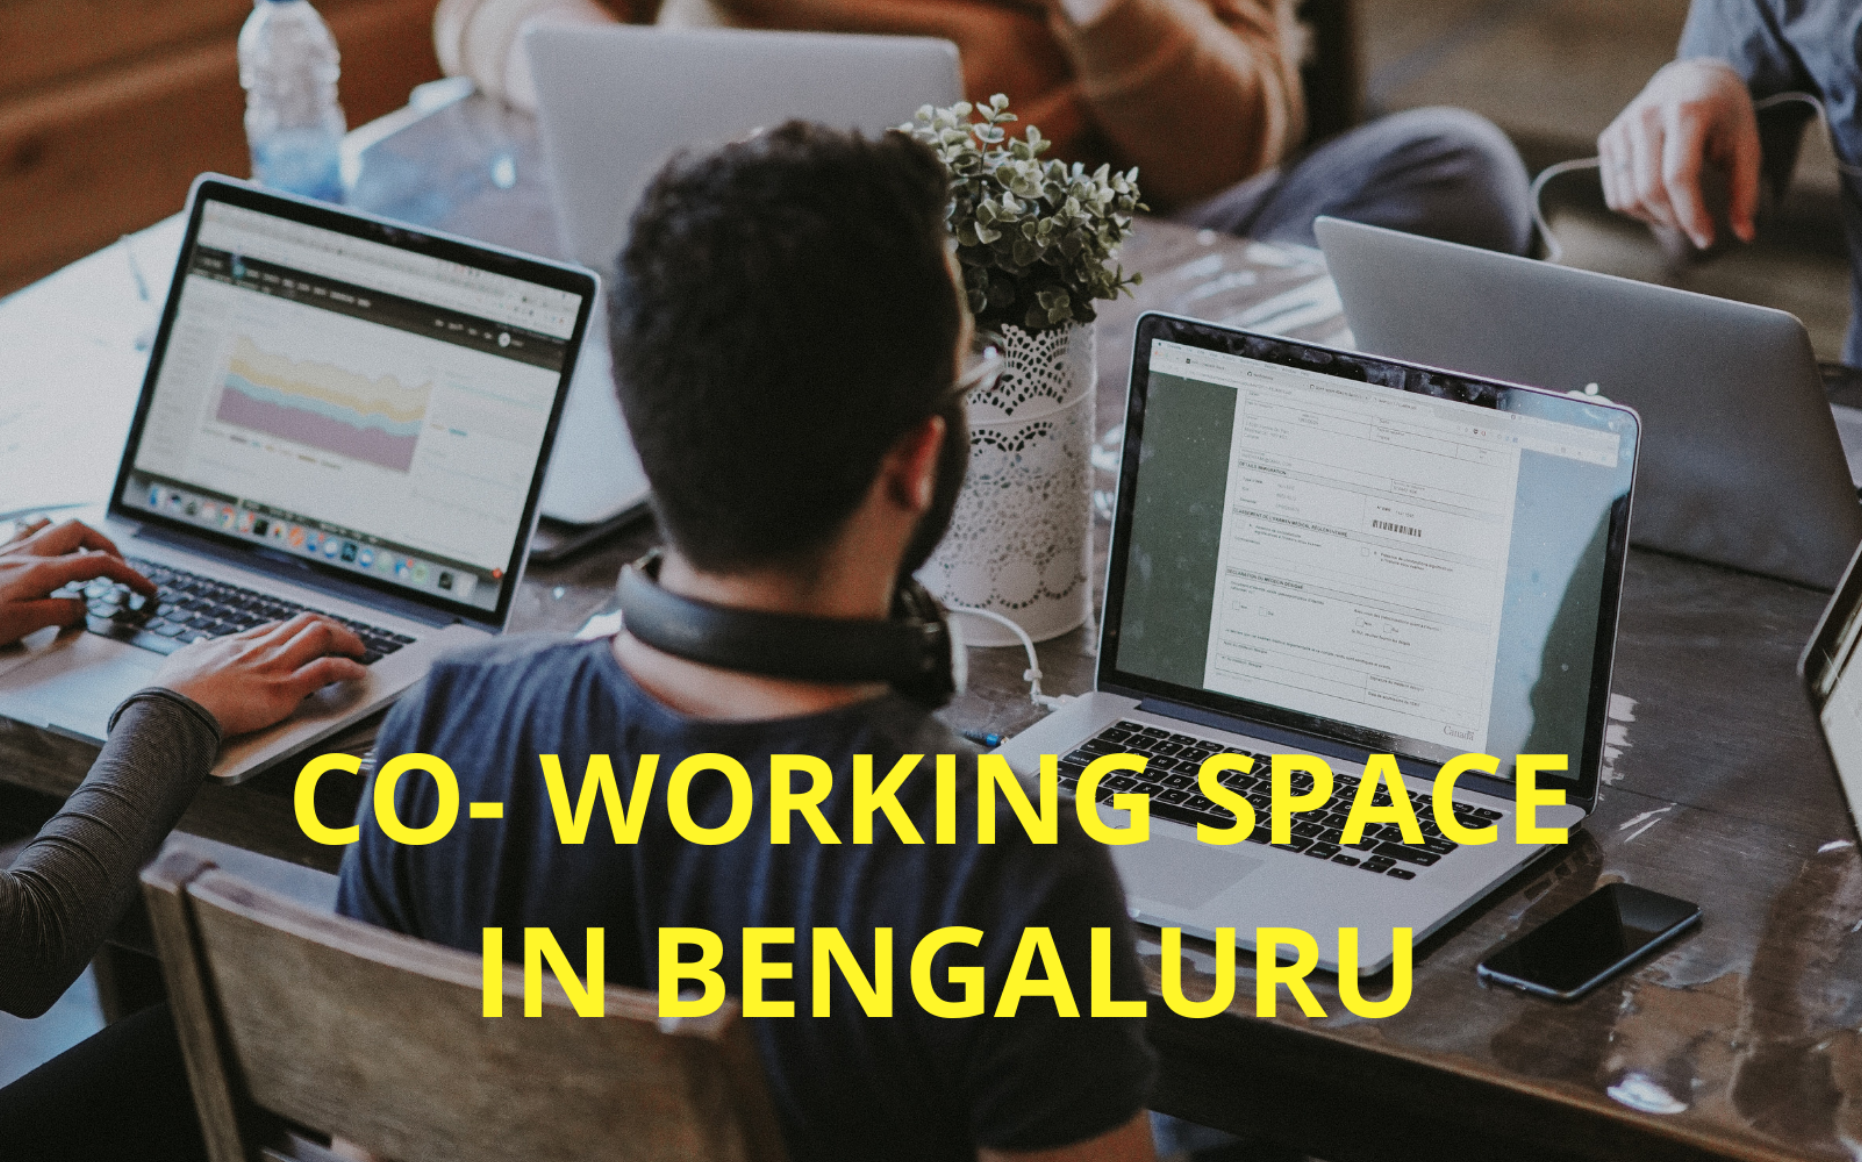 co-working space in Bangalore, Co working space in Bangalore, Co working space in HSR layout Bangalore, Co working space in Bangalore JP Nagar, co-working space in Bangalore price